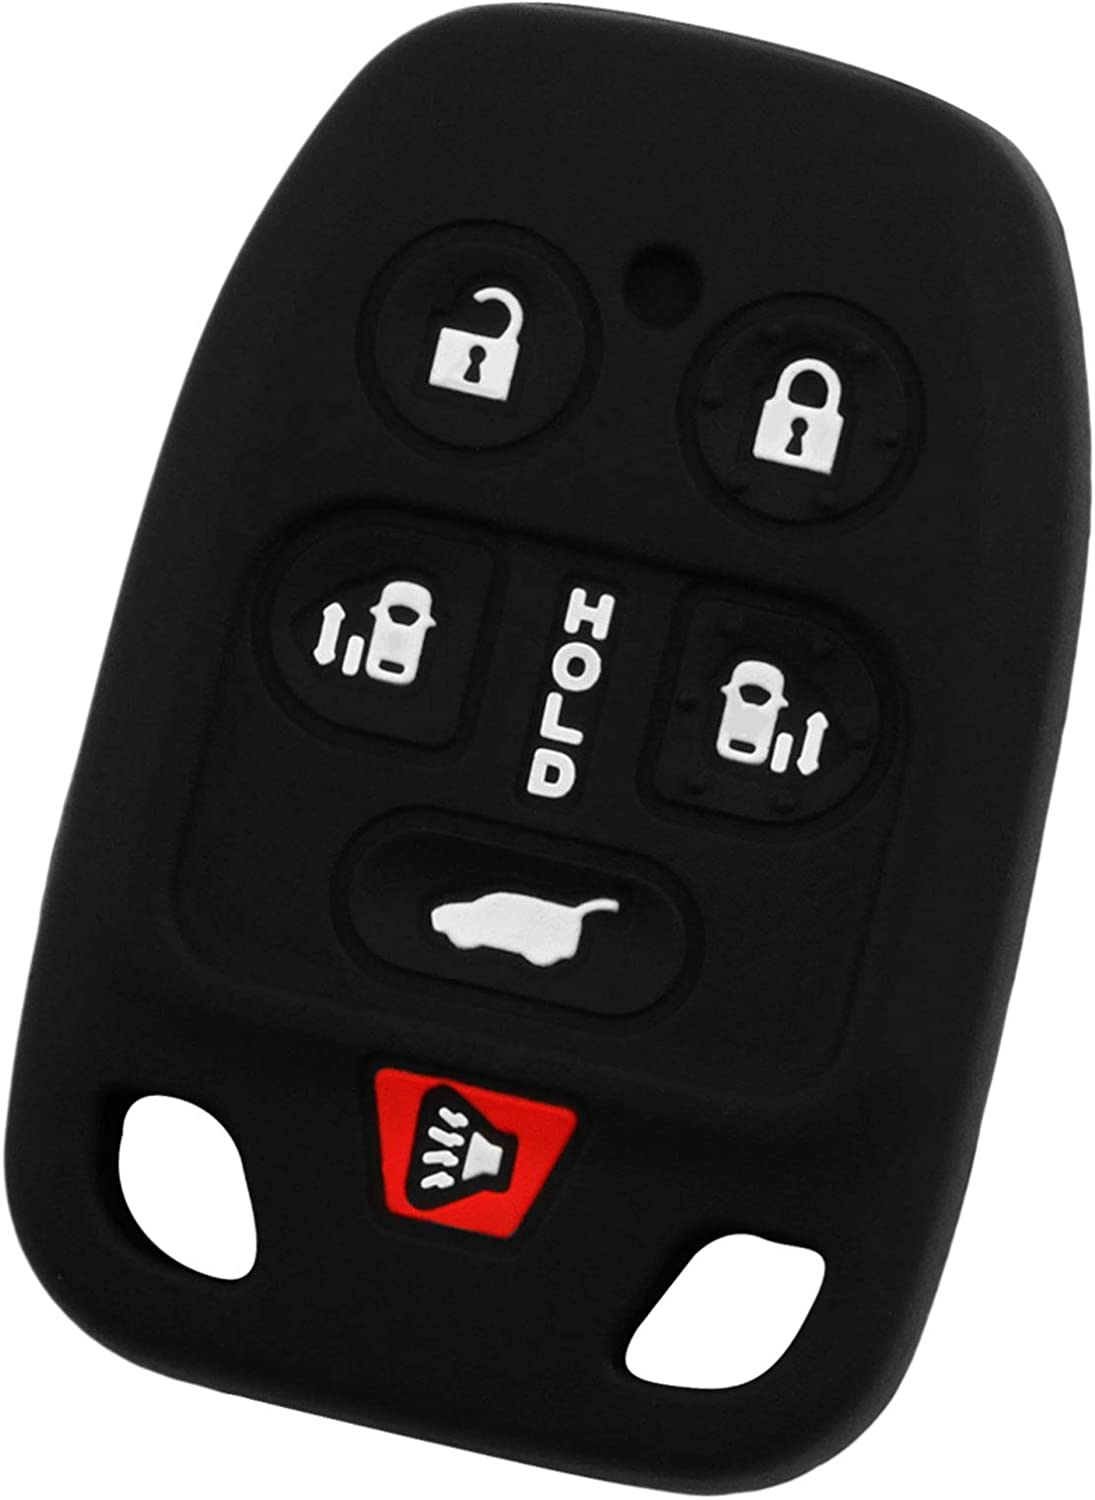 KeyGuardz Keyless Remote Car Key Fob Outer Shell Cover Soft Rubber Case for Honda Odyssey 11 12 13 14 N5F-A04TAA